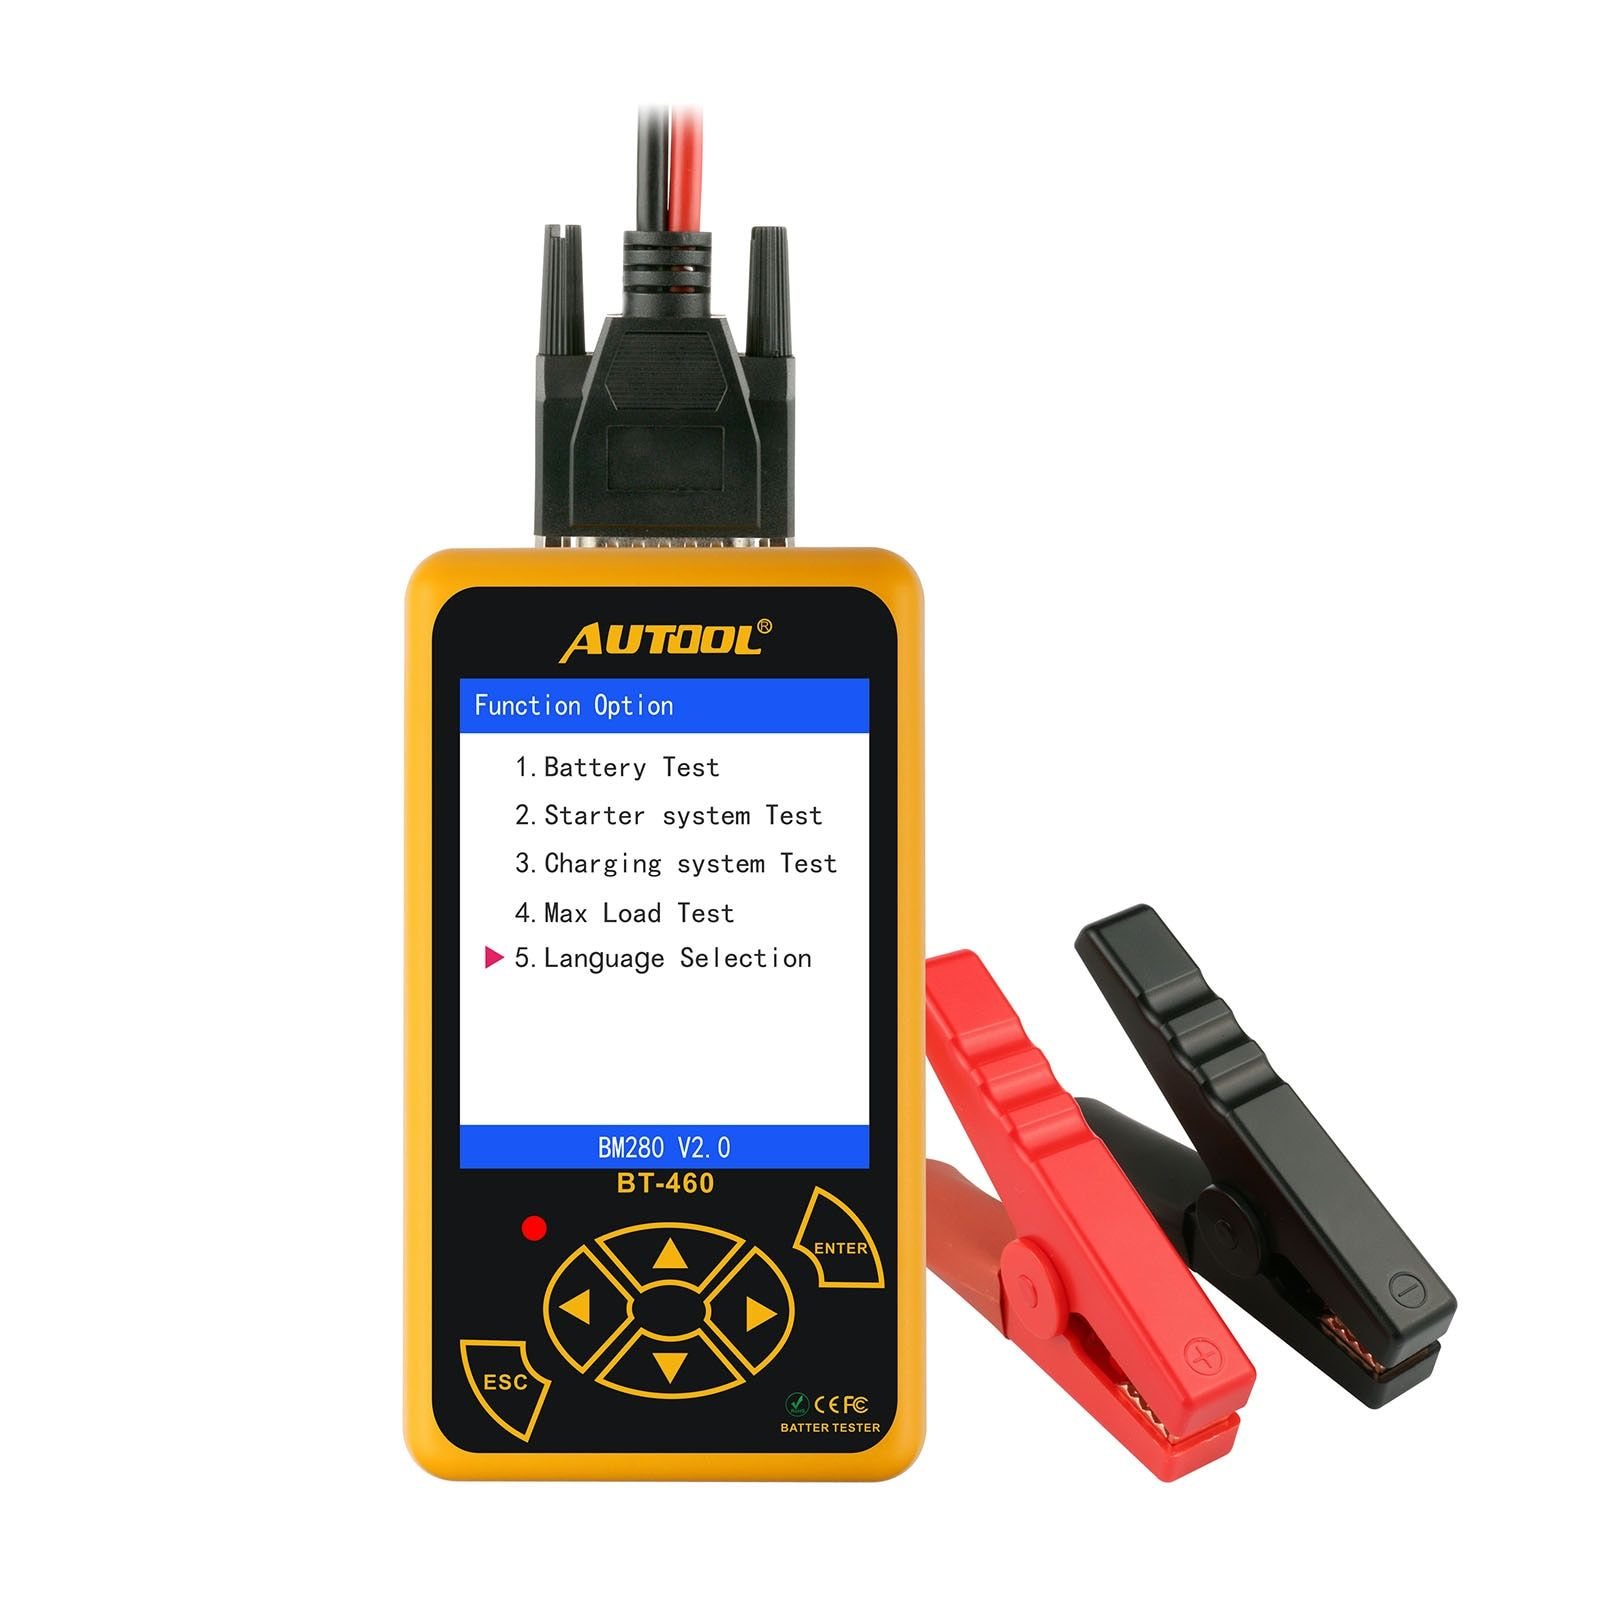 AUTOOL BT-460 Battery Tester Cell Analyzer 24V 12V Vehicle Diagnostic Tool Vehicle Lead-acid AGM GEL TFT Colorful Display